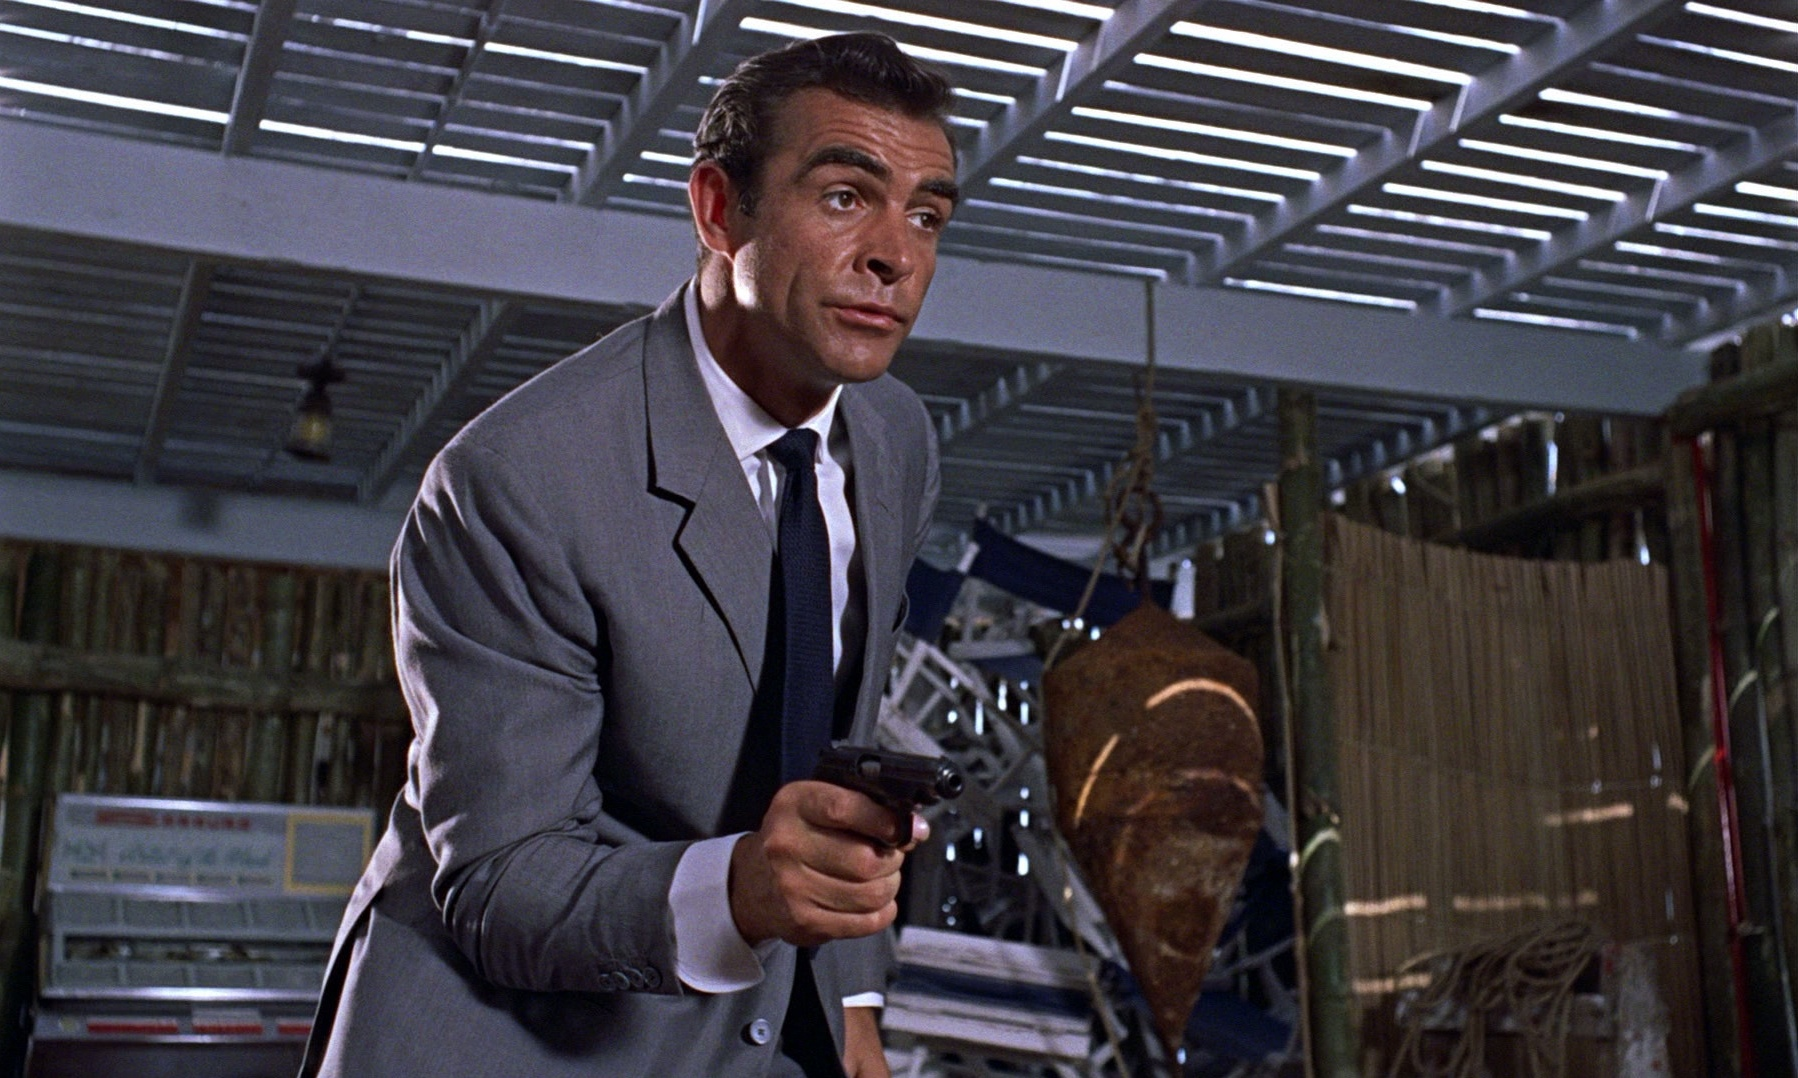 From America with love: Sean Connery tops list of most popular British actors in the US